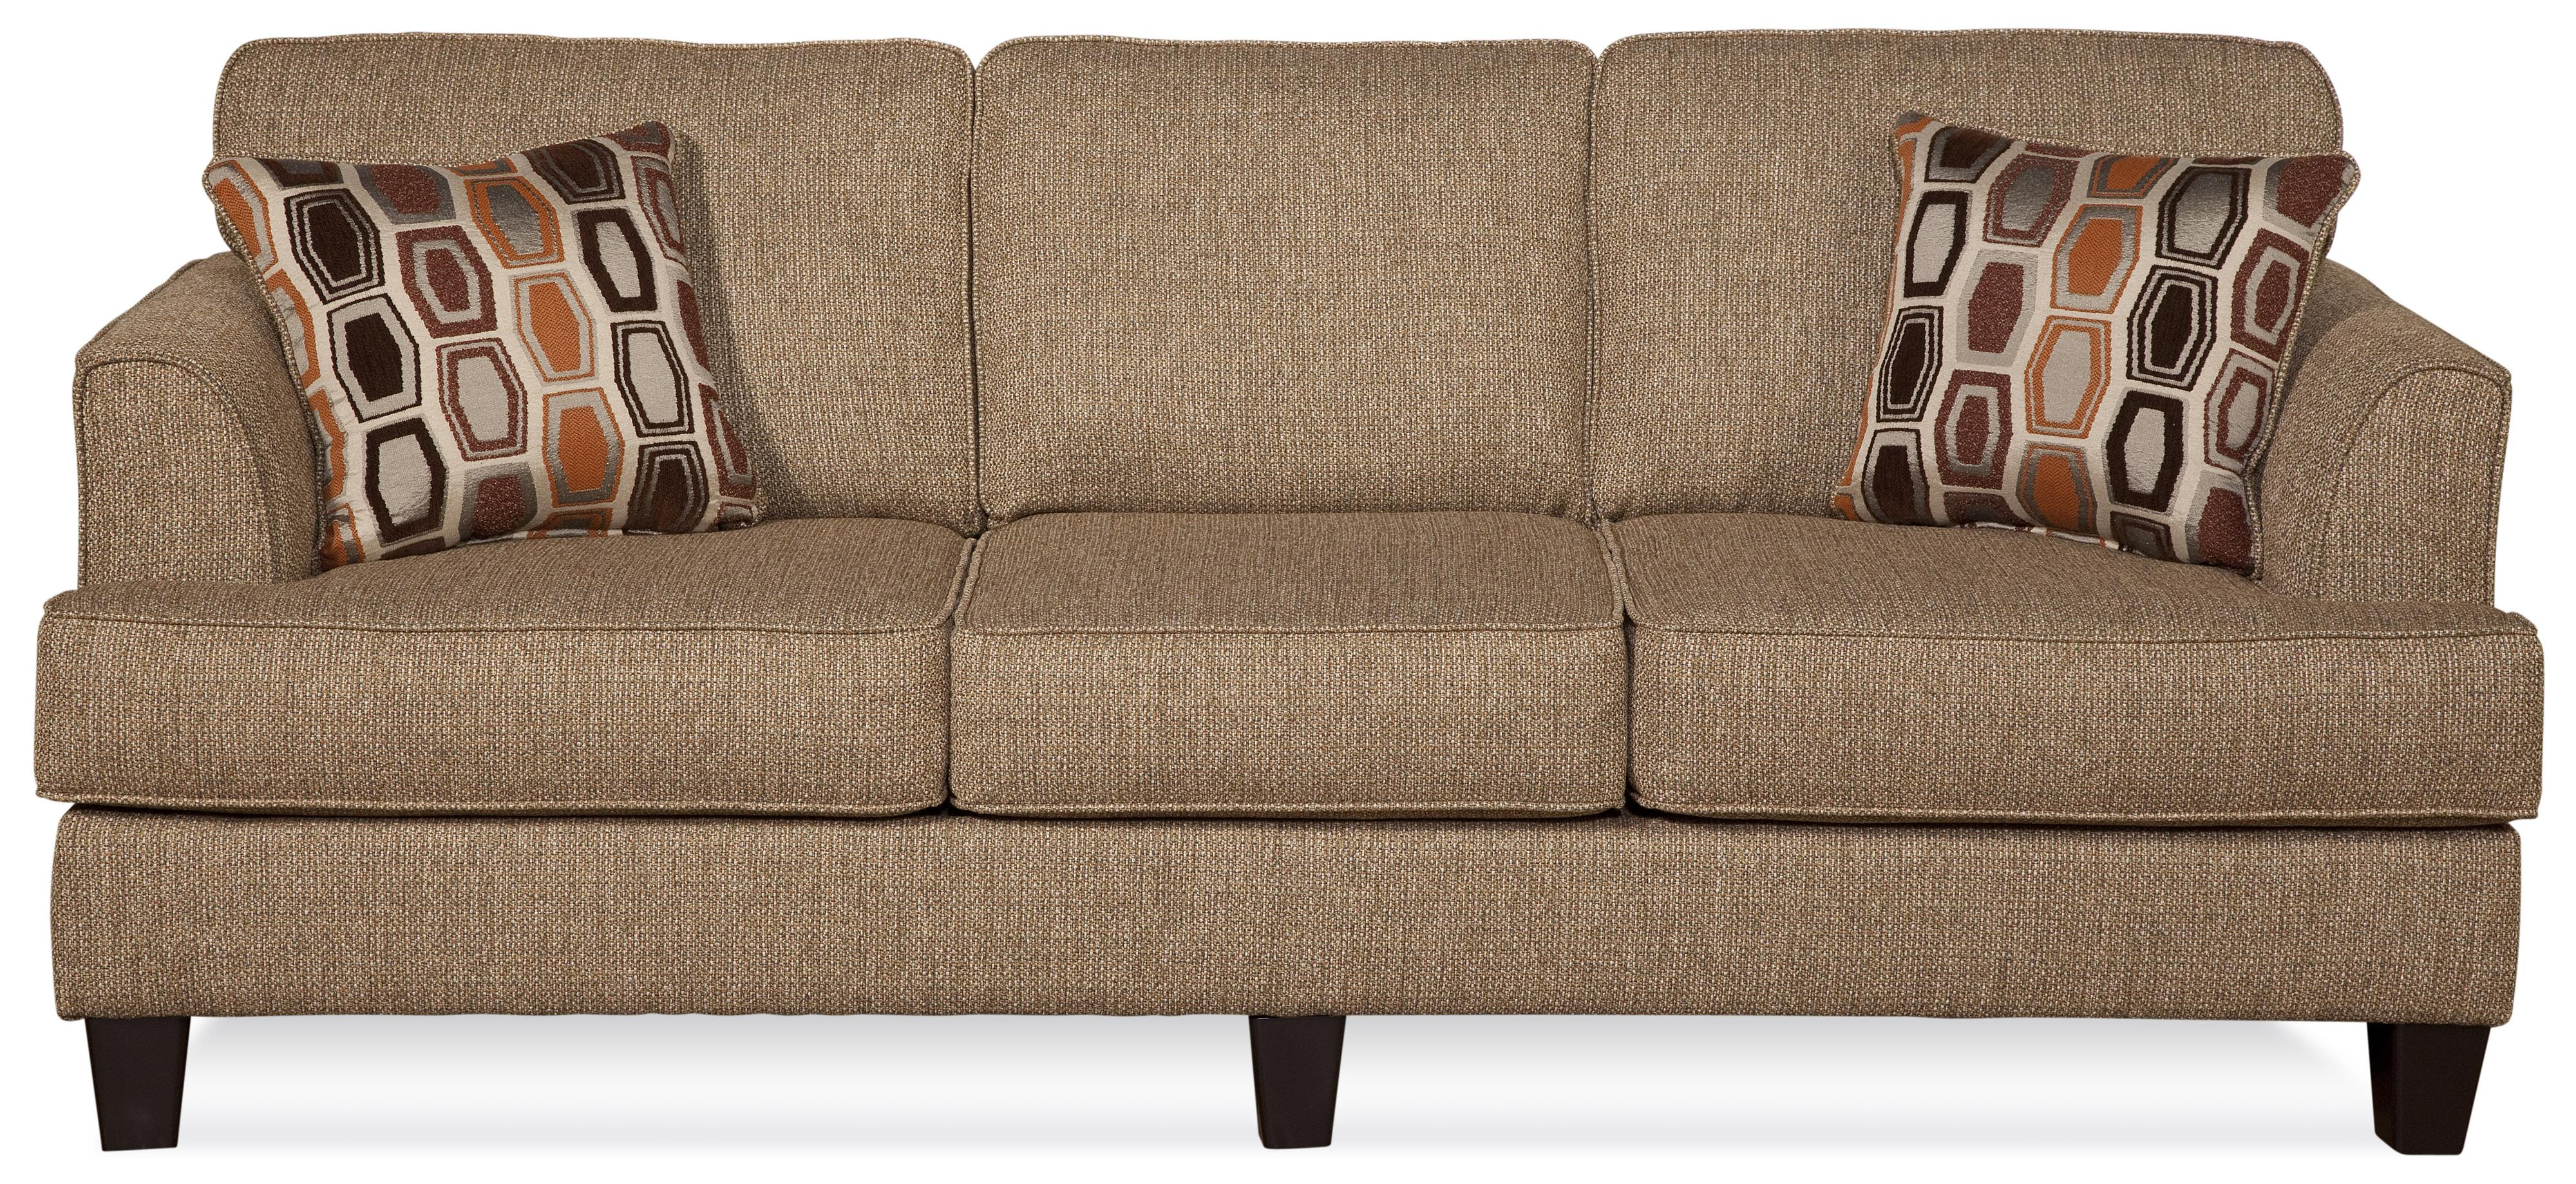 Serta Upholstery by Hughes Furniture 5600 Contemporary Sofa - Item Number: 5600S-BBAU